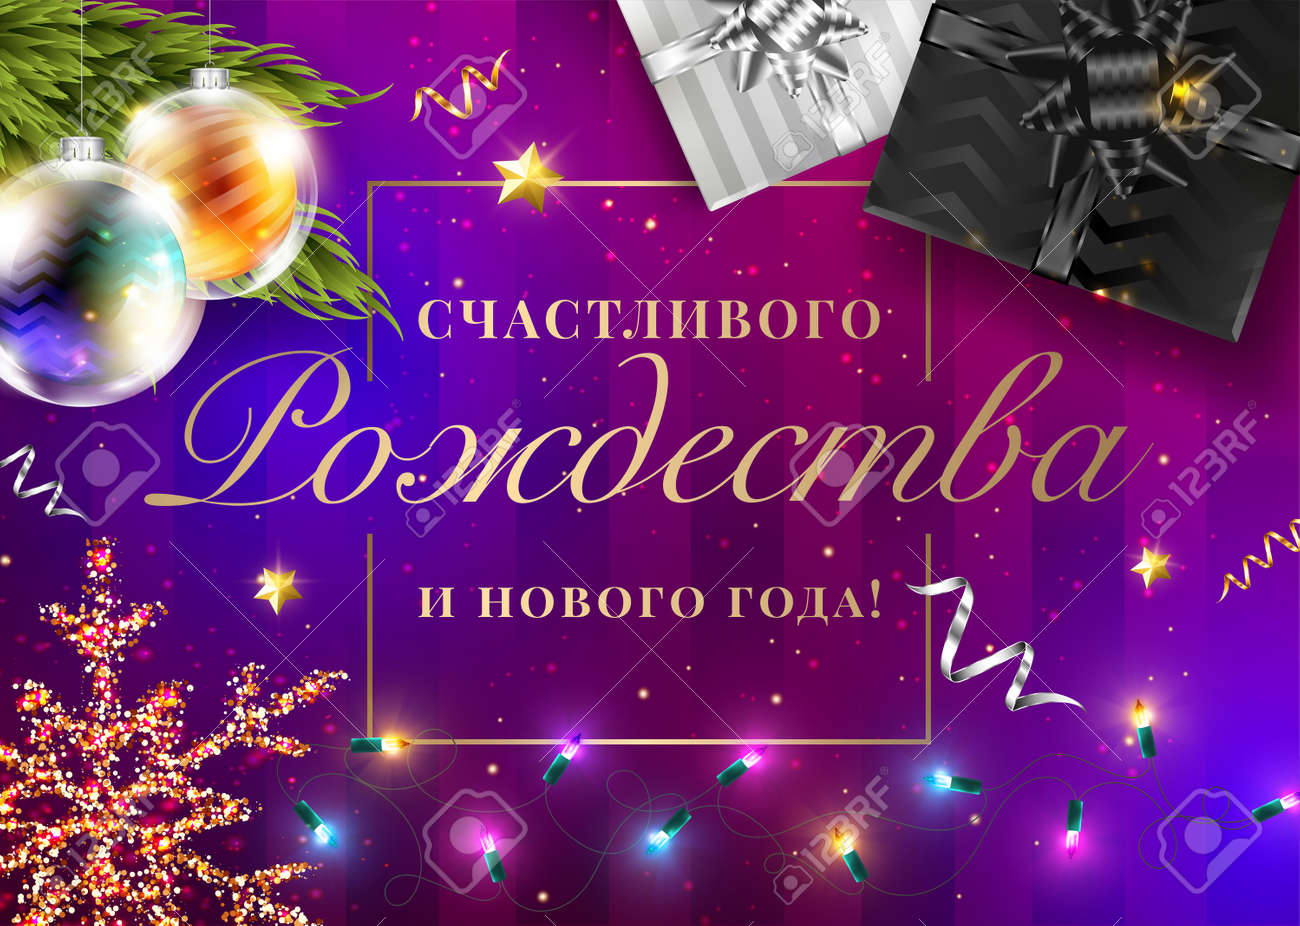 Merry Christmas In Russian.Merry Christmas And Happy New Year In Russian Vector Christmas